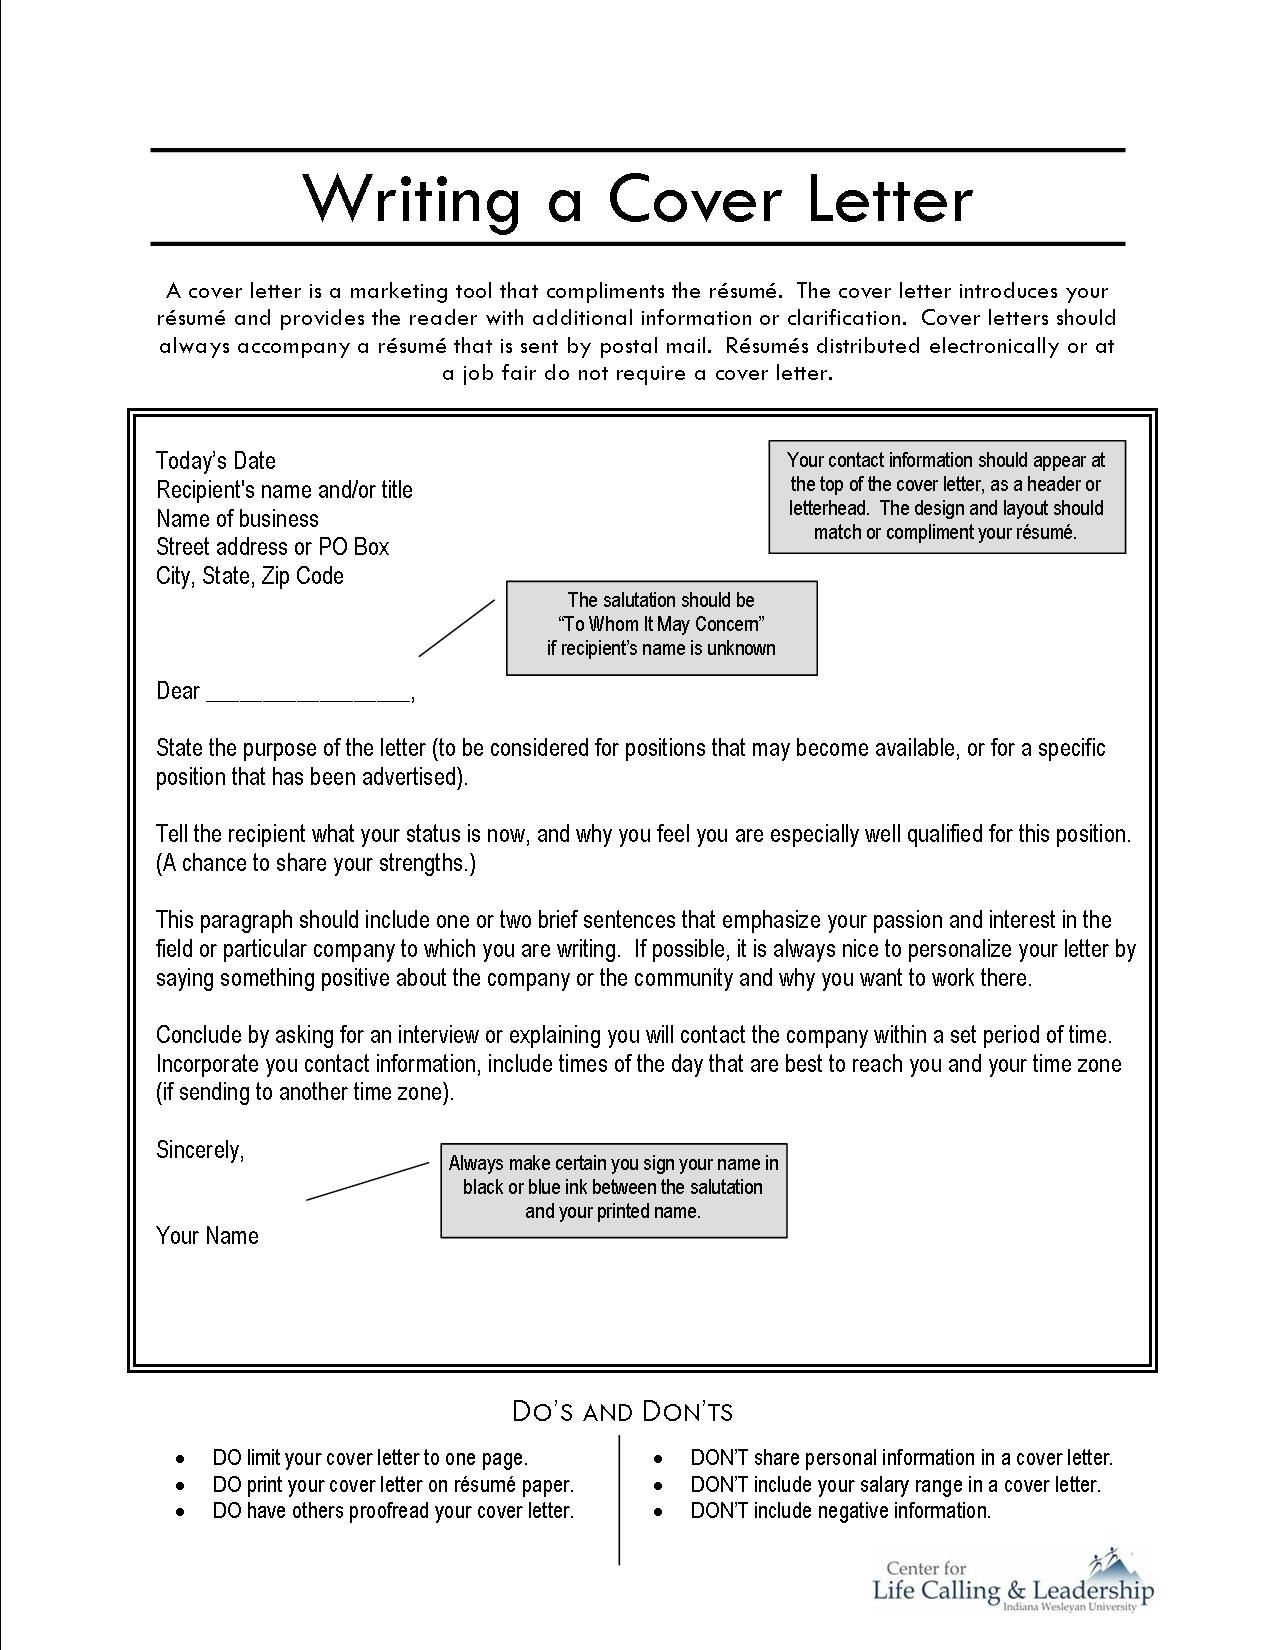 Awesome How Start Cover Letter For Resume Jianbochen Rfi Sample · Best Cover  LetterWriting ... Regard To What To Put In Cover Letter For Resume